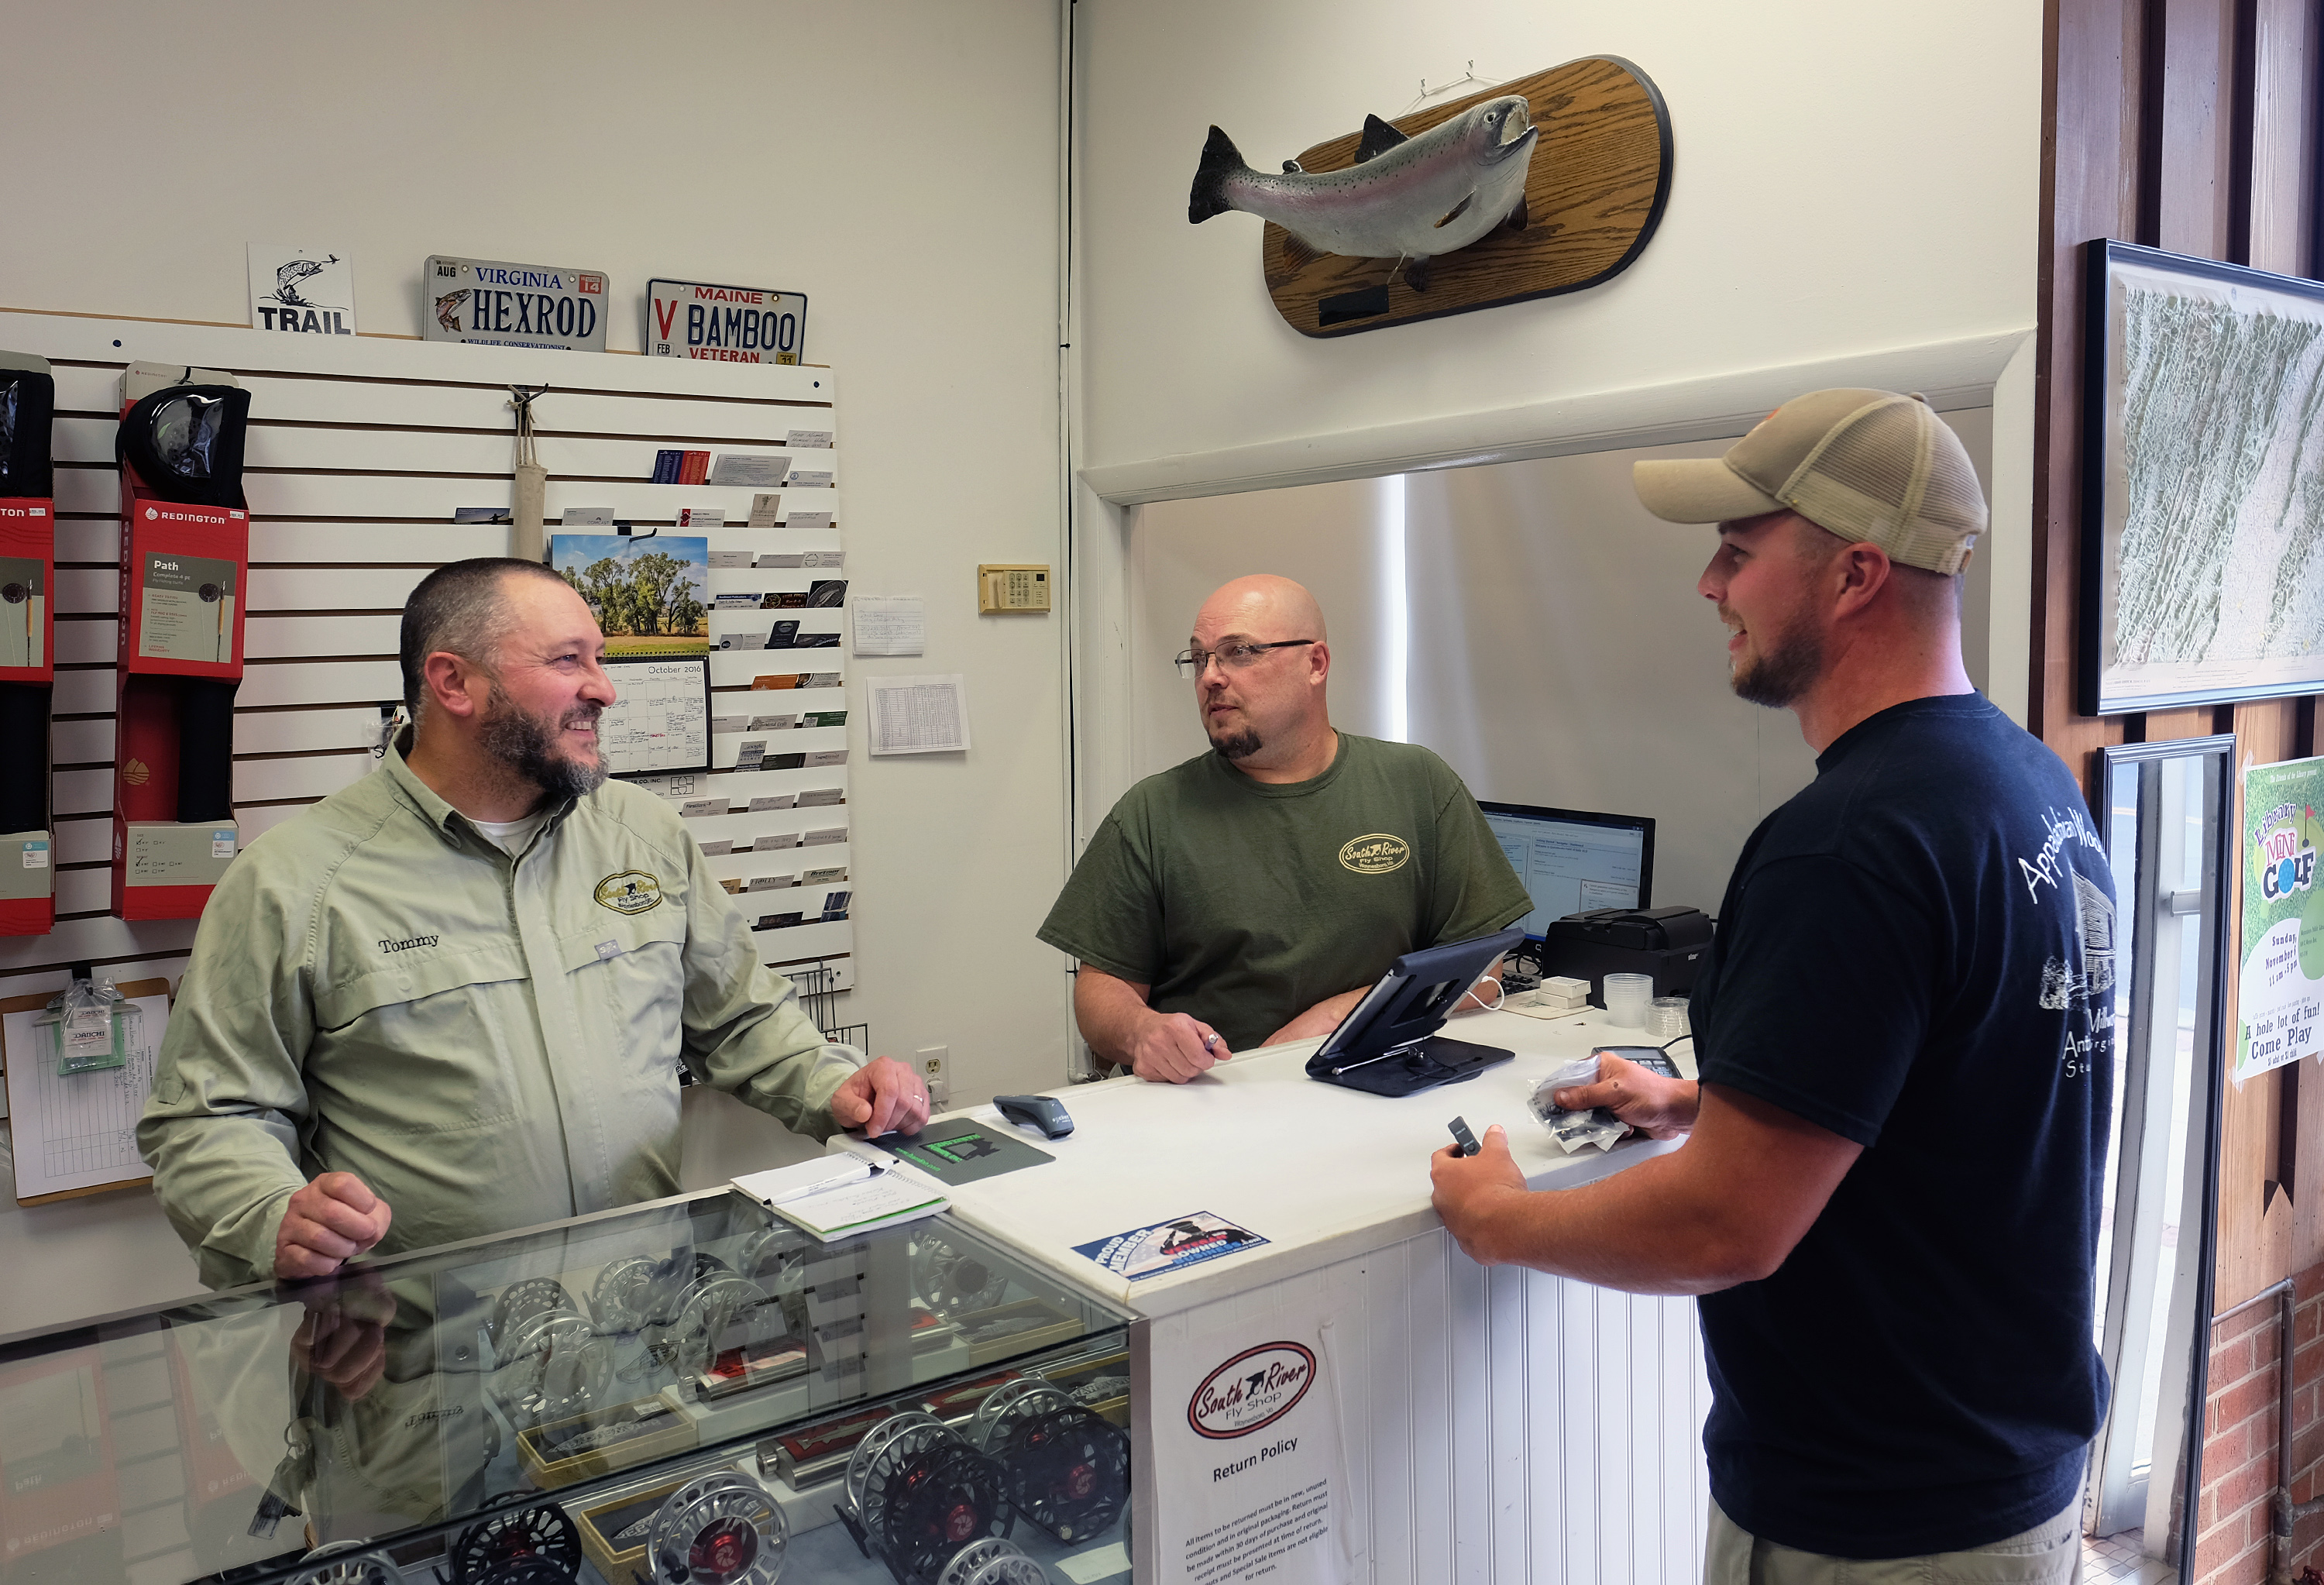 Tommy Lawhorne, and Kevin Little talk with customer Will Walter of Doom, Va. at the South River Fly shop in Waynesboro, Va., Thursday, Oct. 13, 2016. (Photo by Norm Shafer).